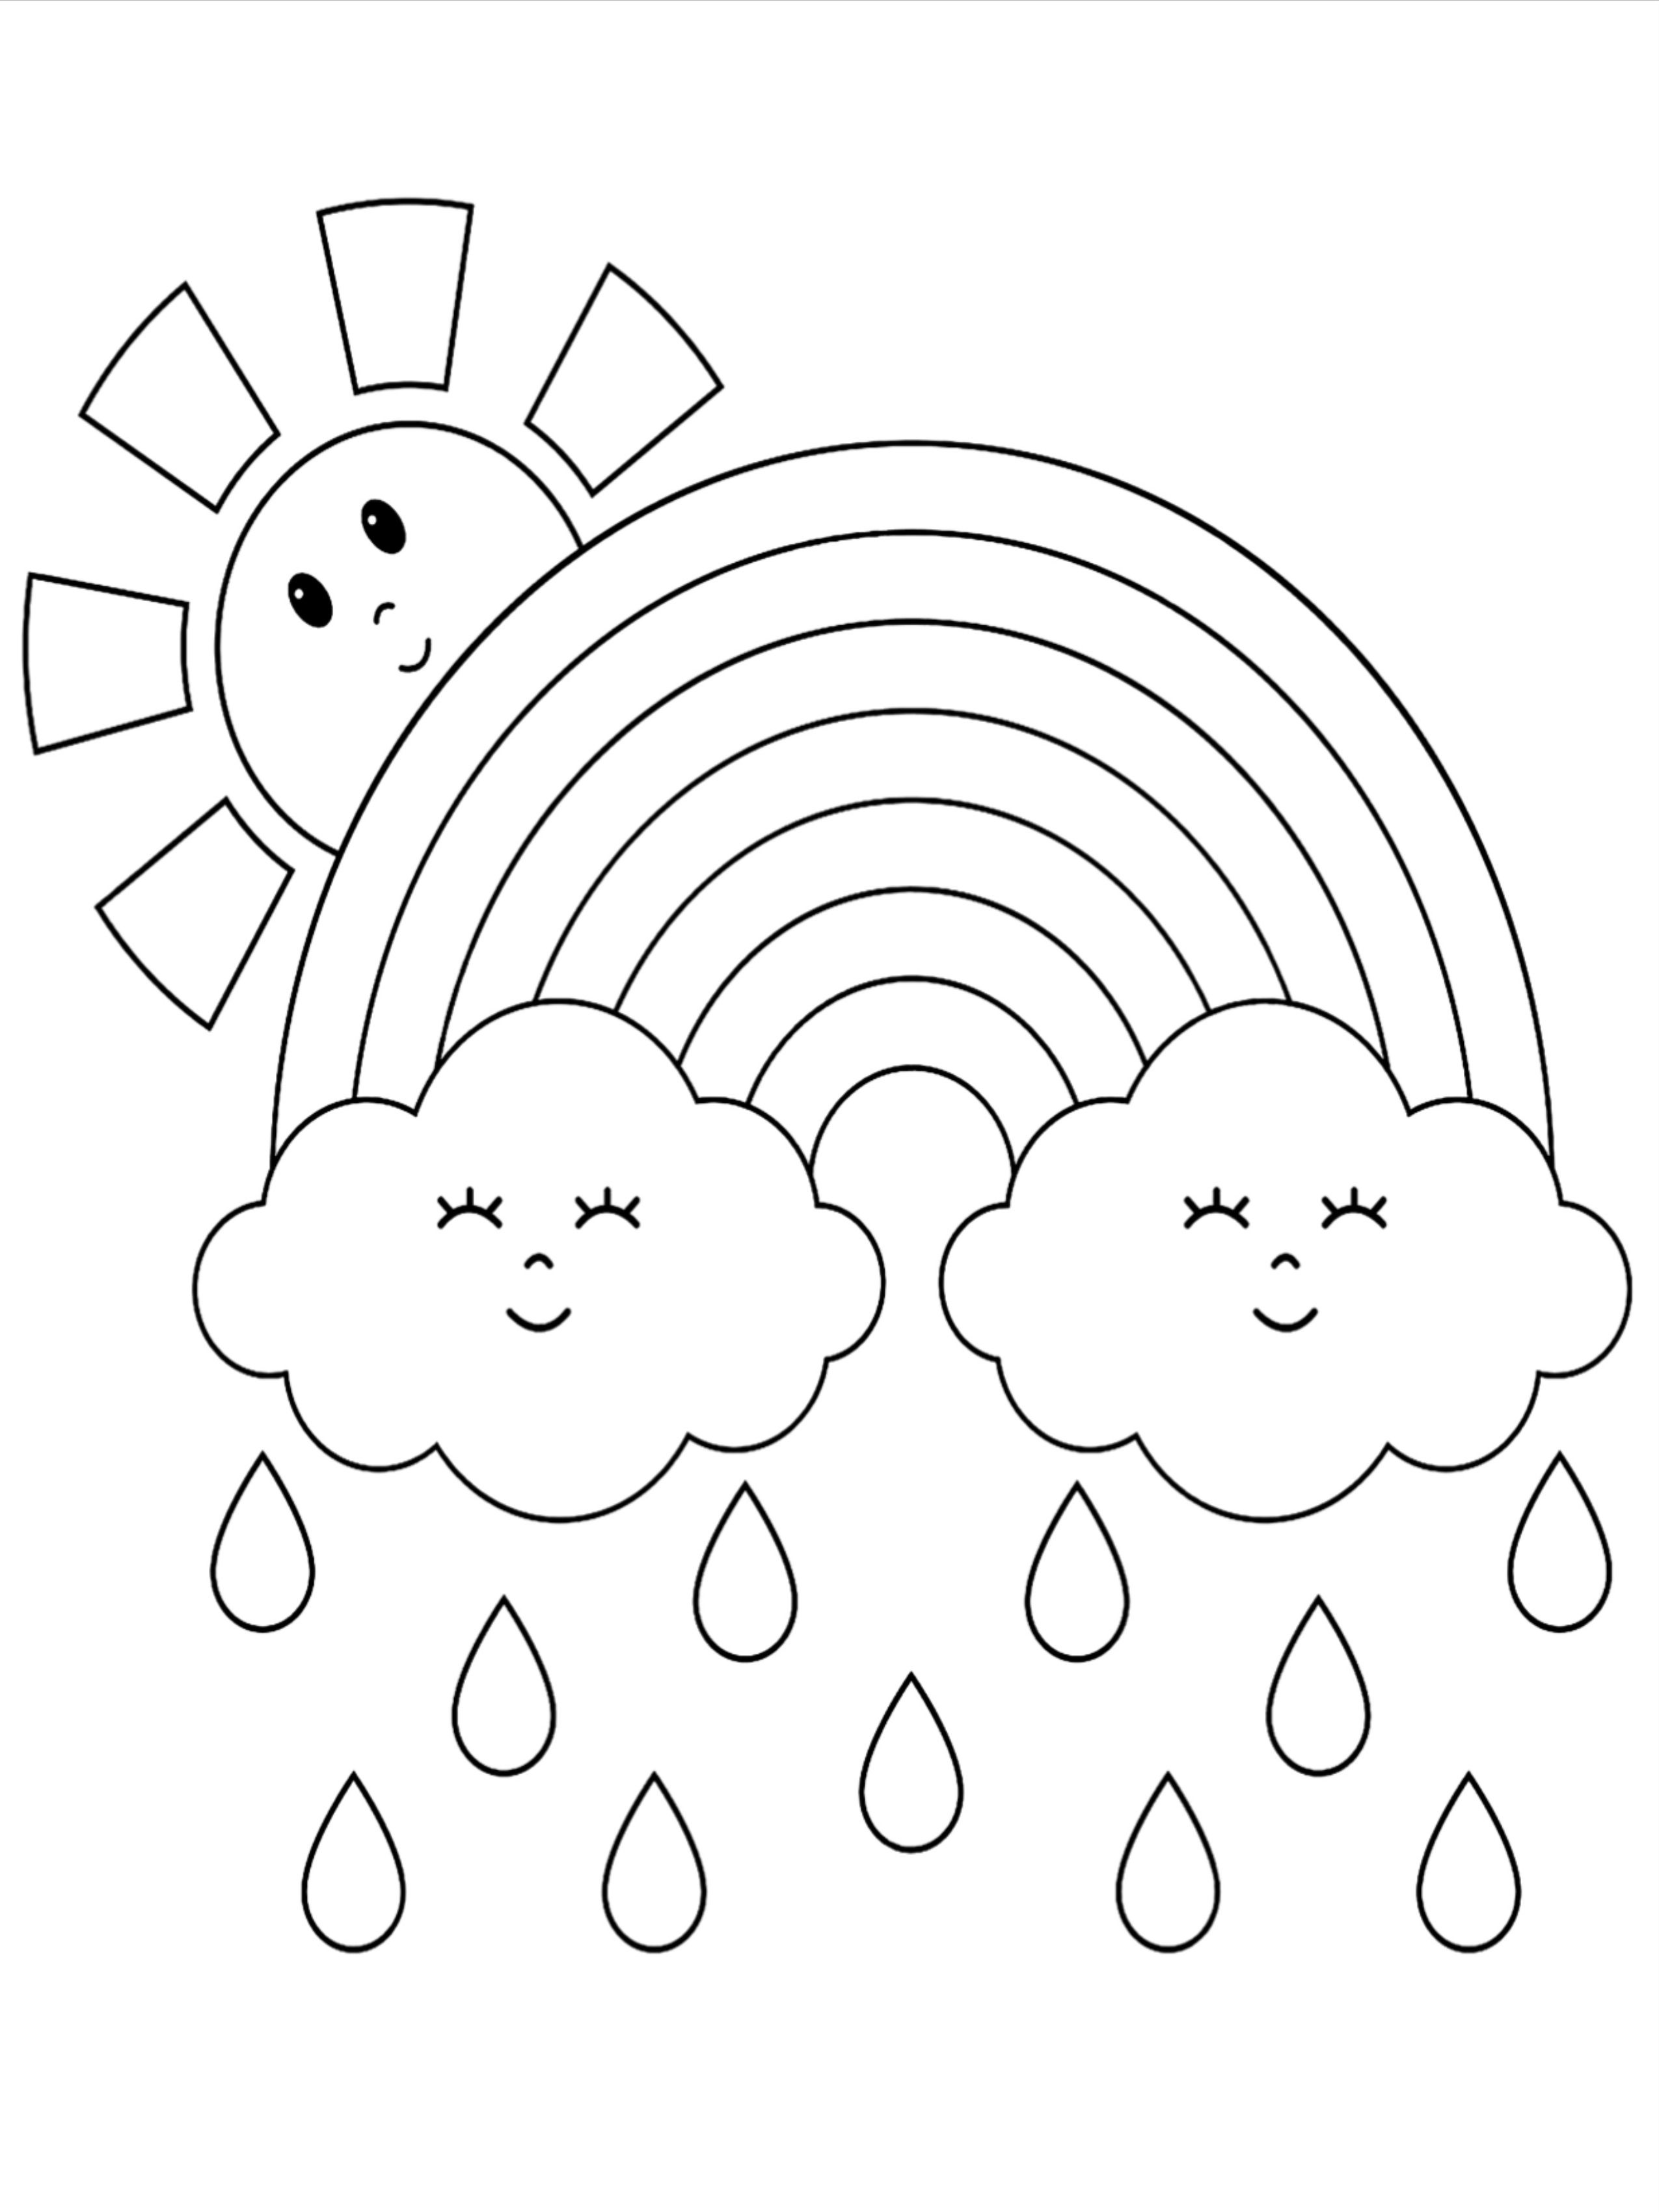 50 Weather Coloring Pages For Kids Coloring Pages Coloring Pages For Kids Preschool Coloring Pages